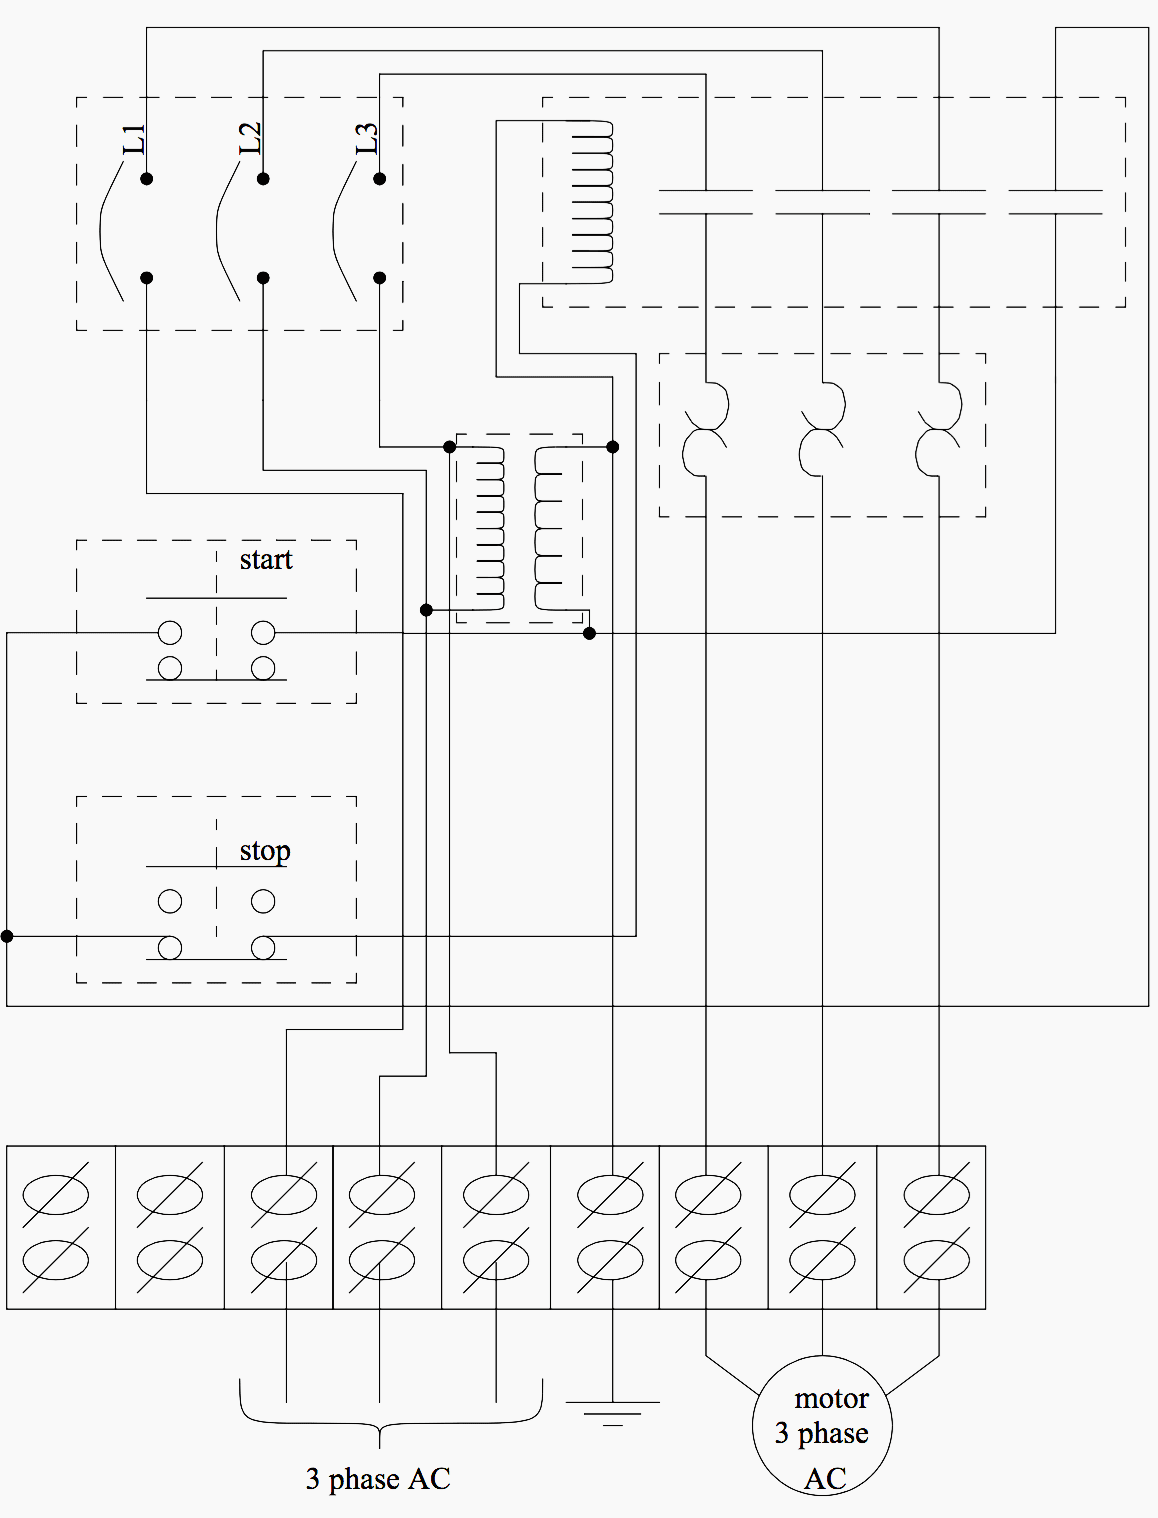 hight resolution of basic electrical design of a plc panel wiring diagrams eepfinal plc panel wiring